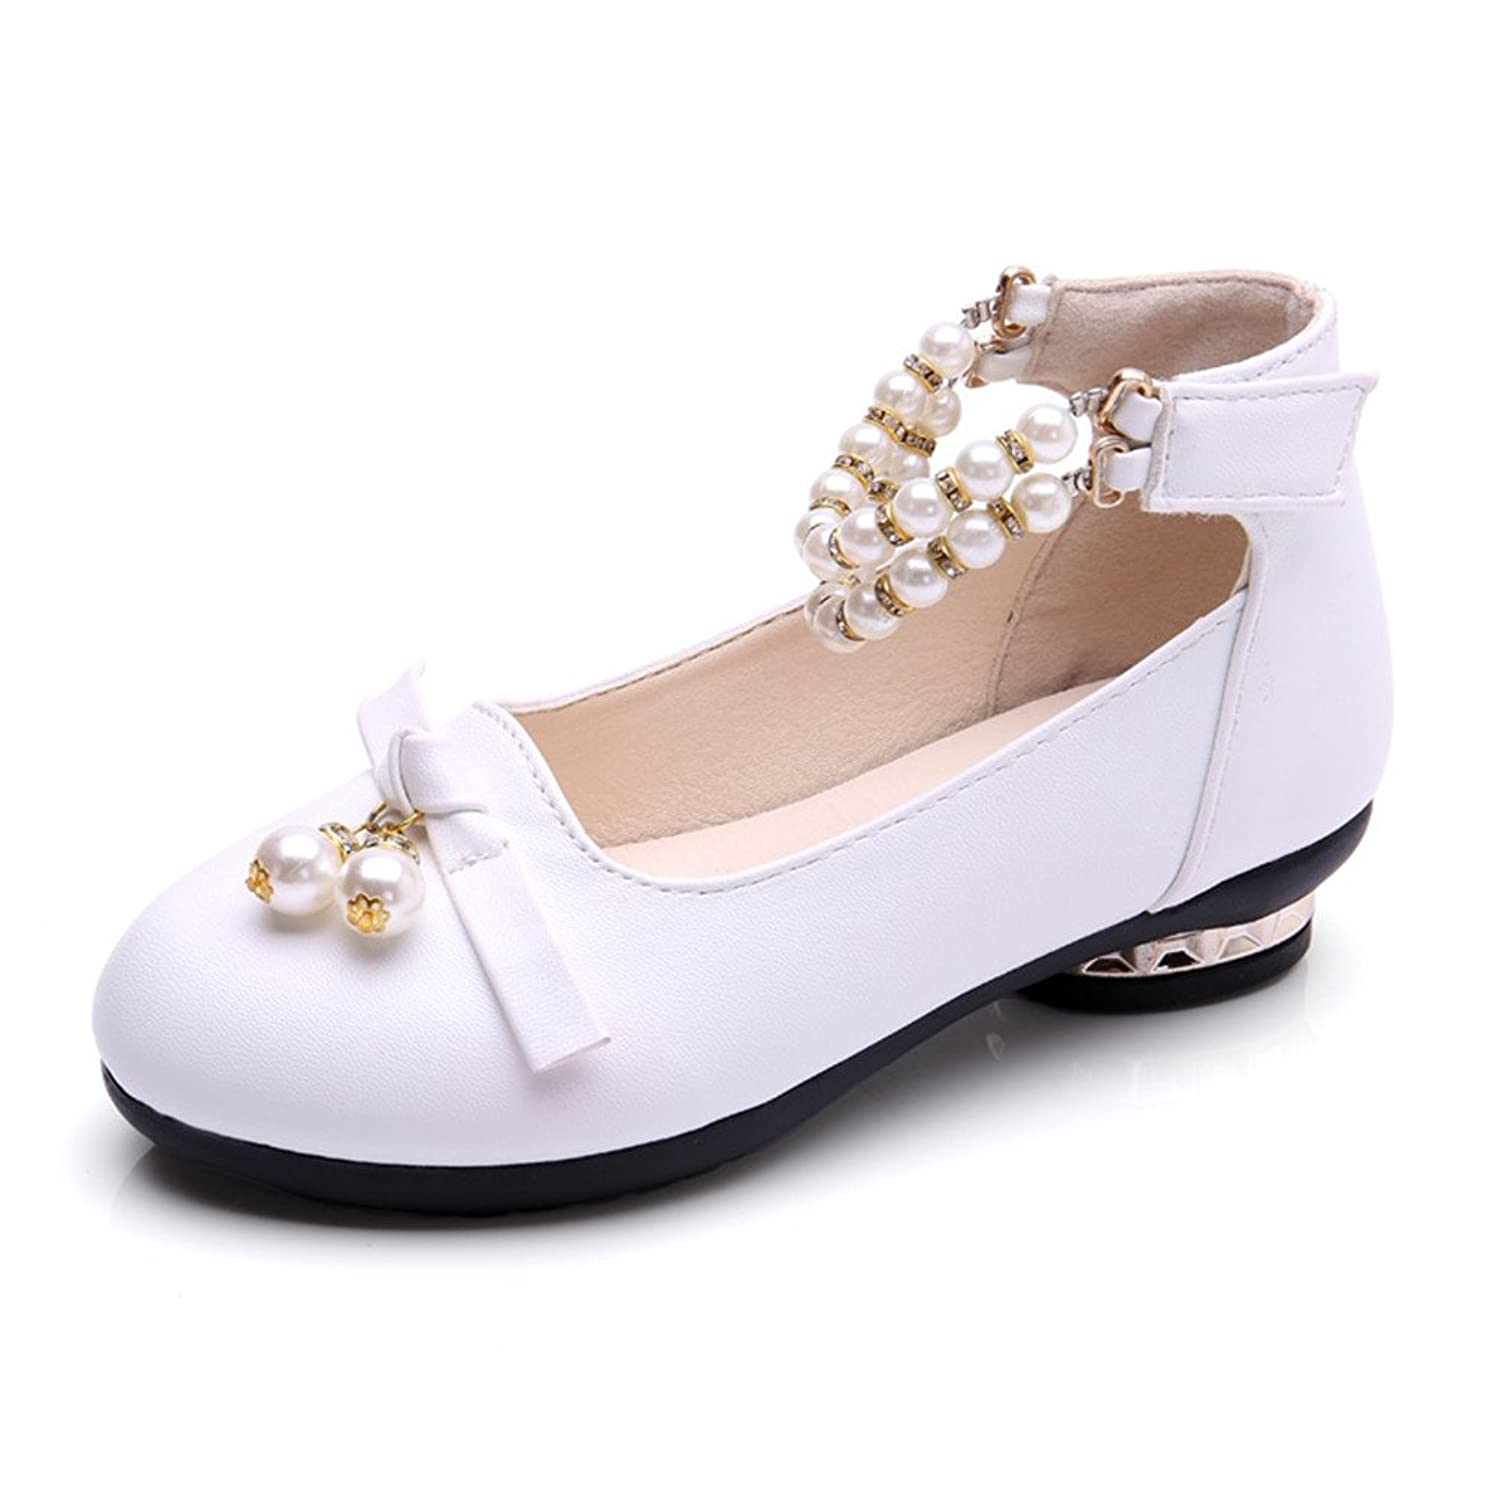 763088b97 OURDREAM Toddler/Little Girl Dress Ballet Flat Kids Pearl Ankle Strap Faux  Suede Shoes